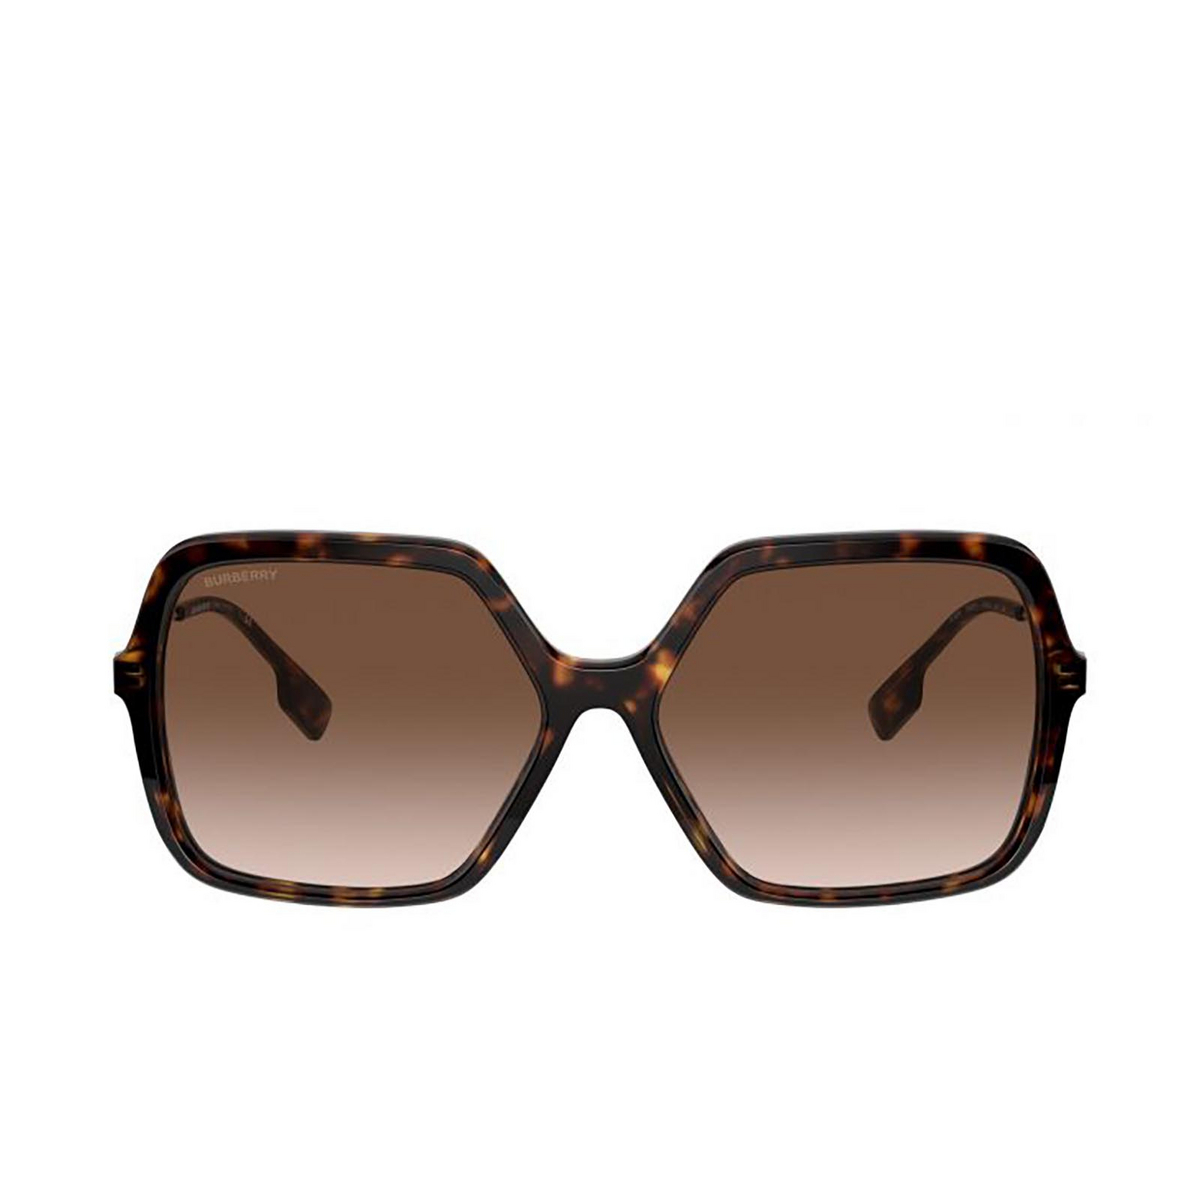 Burberry® Square Sunglasses: Isabella BE4324 color Dark Havana 300213 - front view.